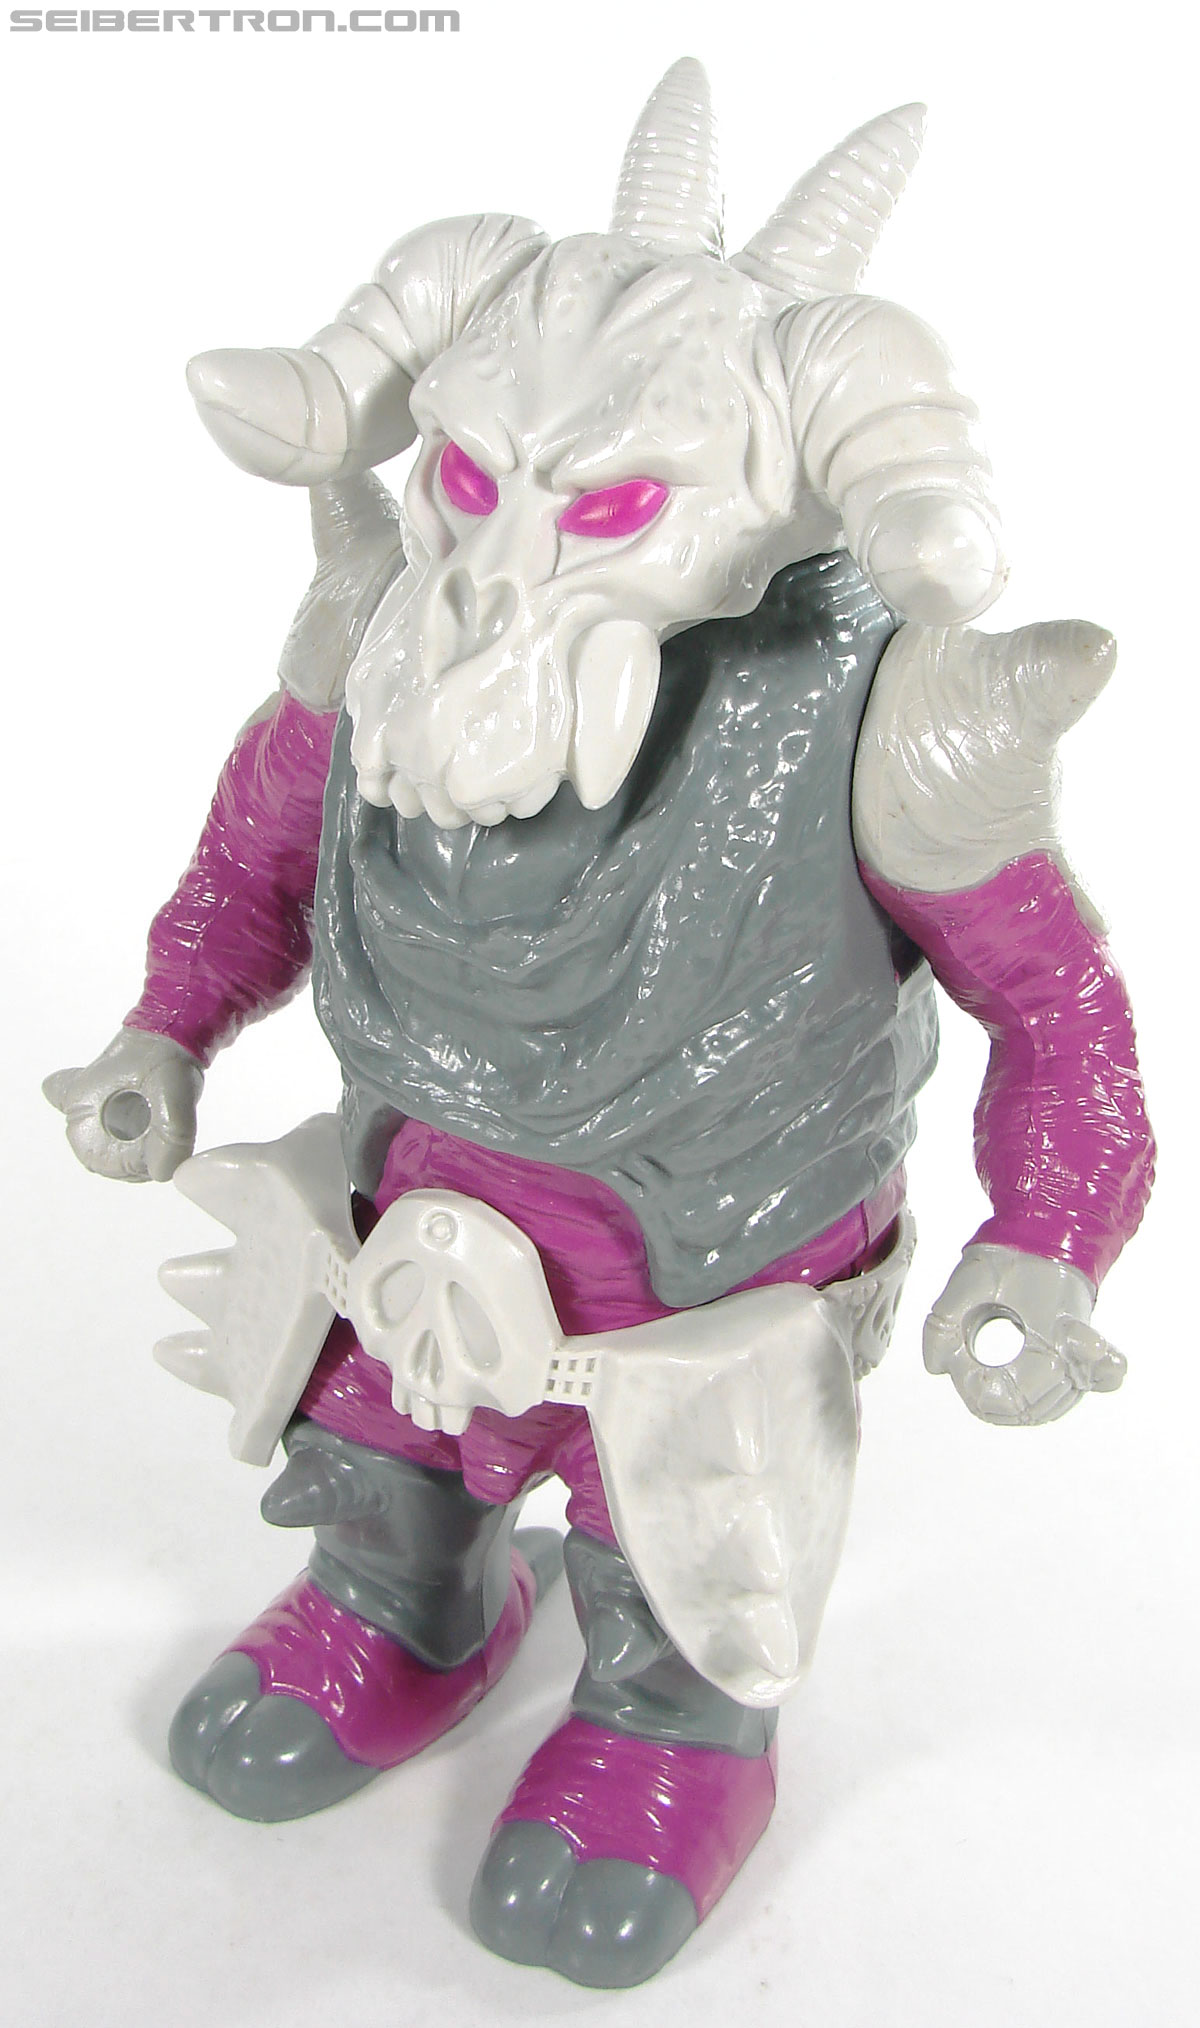 Transformers Super God Masterforce Skullgrin (Dauros) (Image #89 of 196)